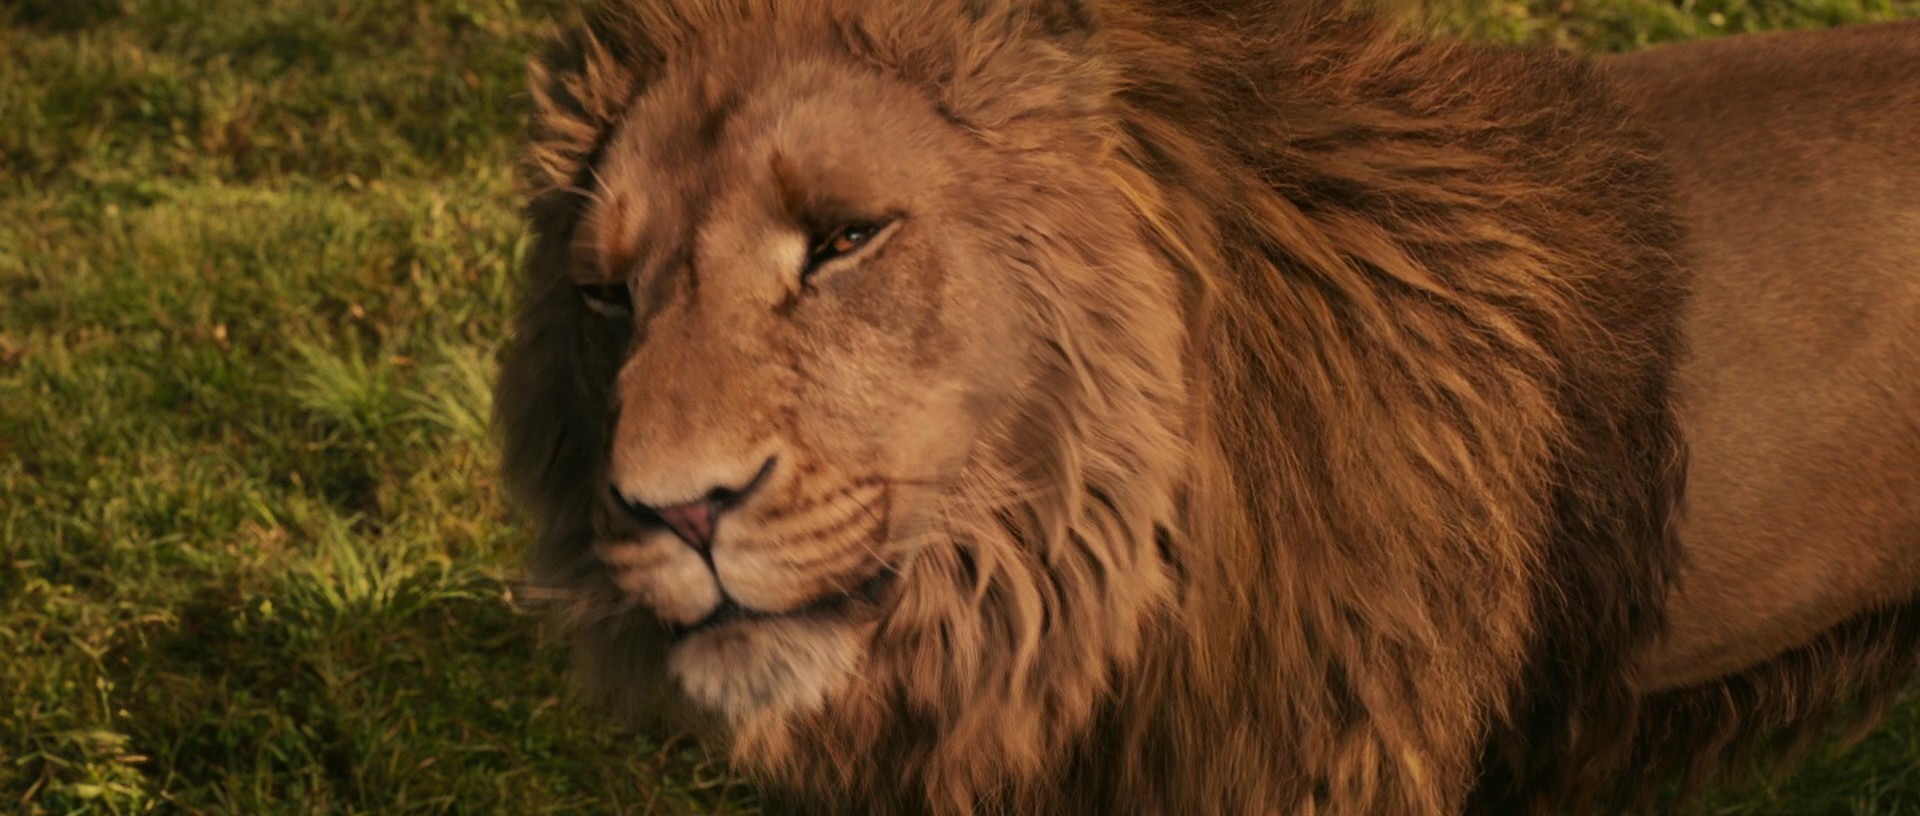 narnia the lion the witch and the wardrobe aslan